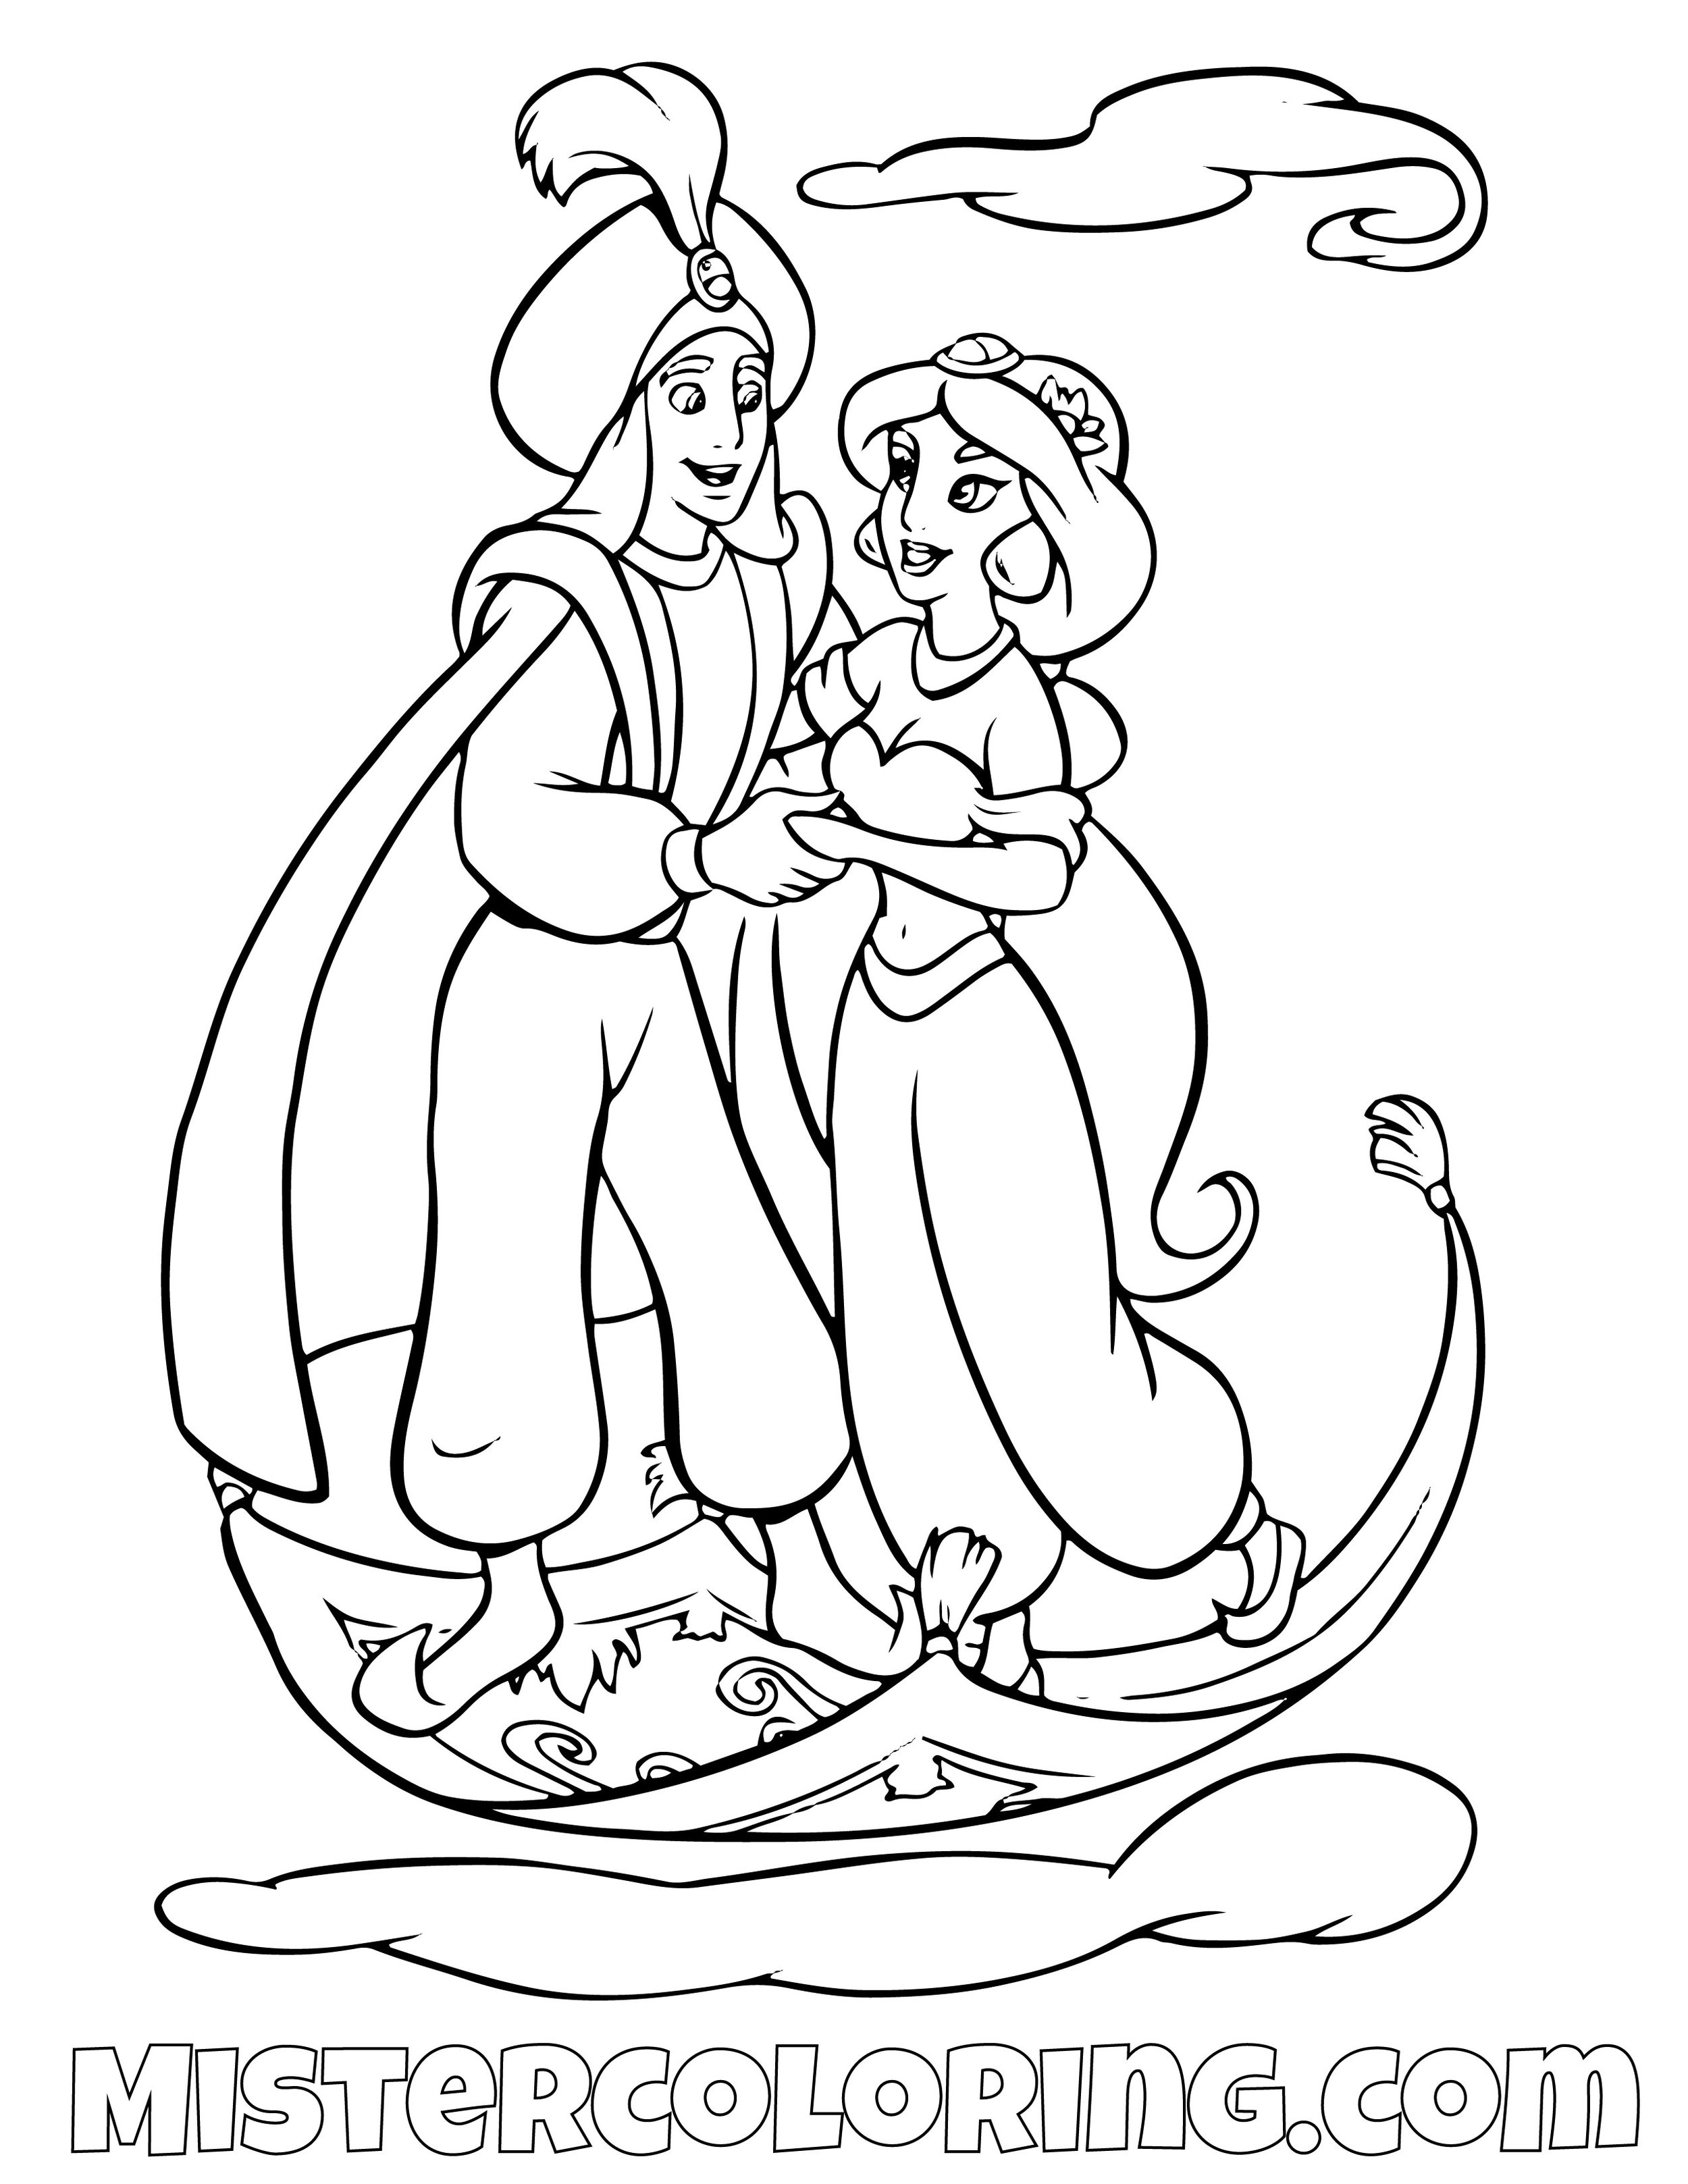 Aladdin Coloring Pages For Kids — Mister Coloring